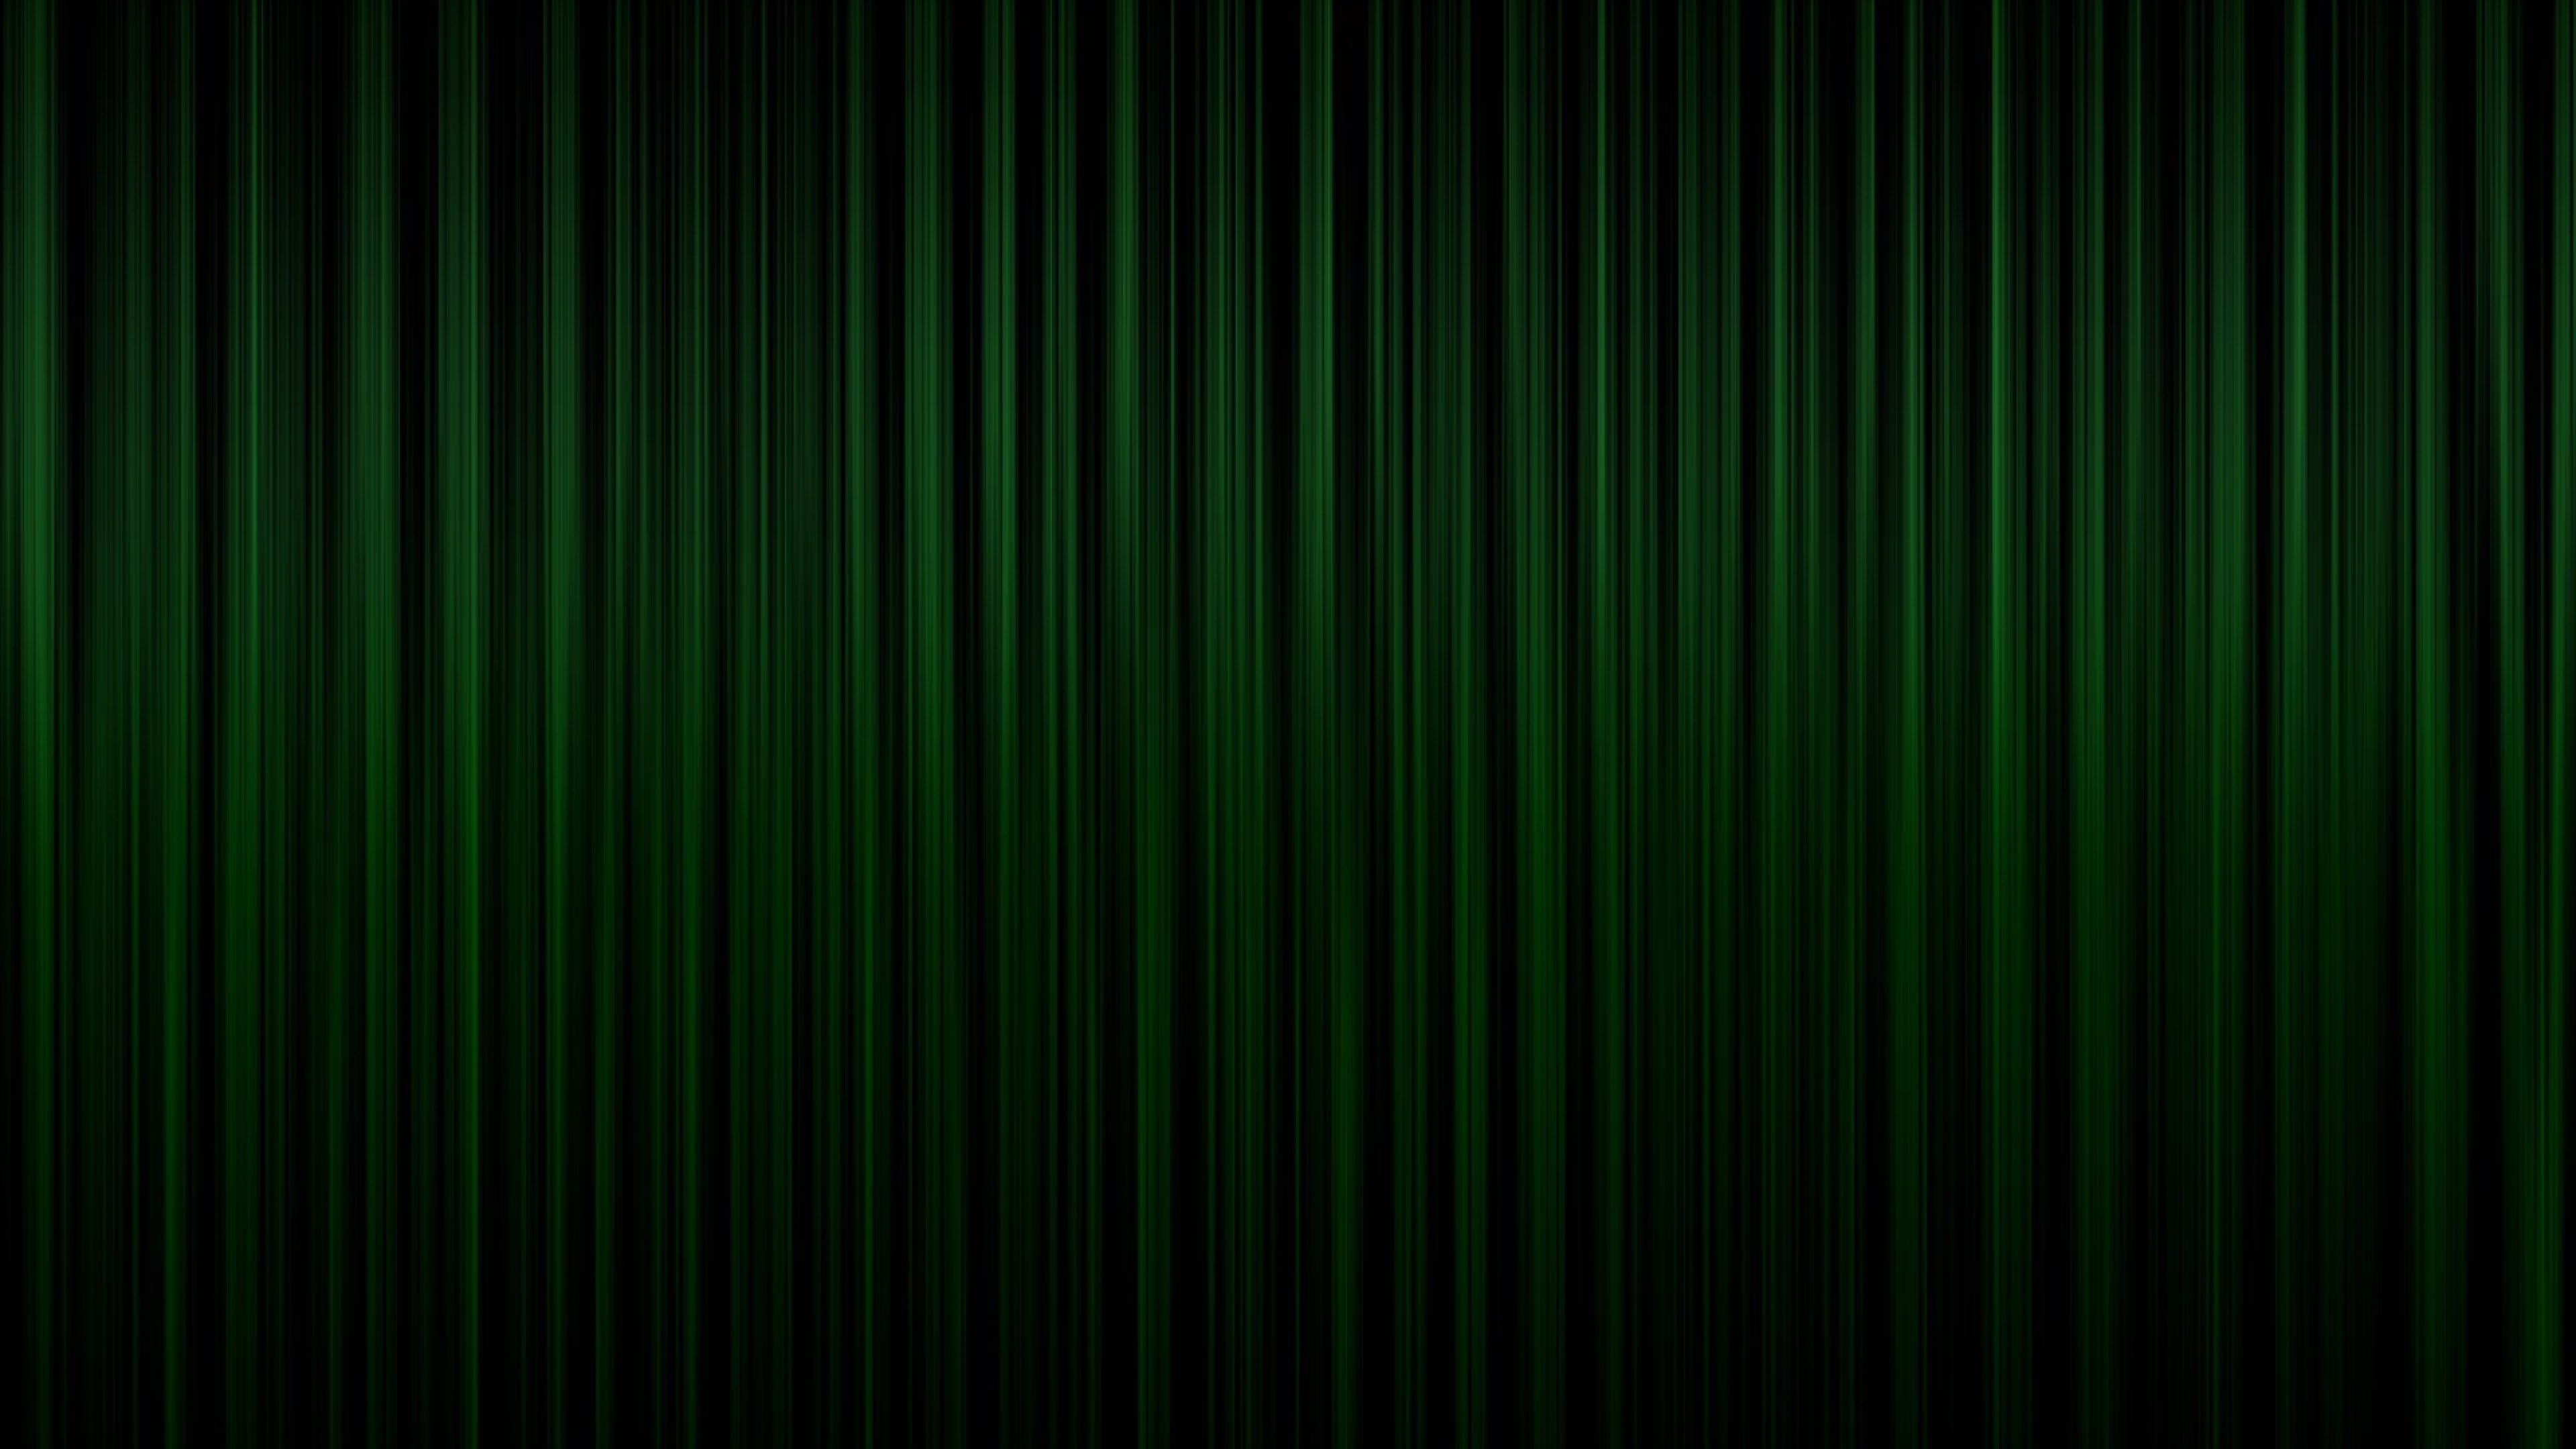 Black Wallpapers High Resolution: Teal Wallpaper HD High Quality